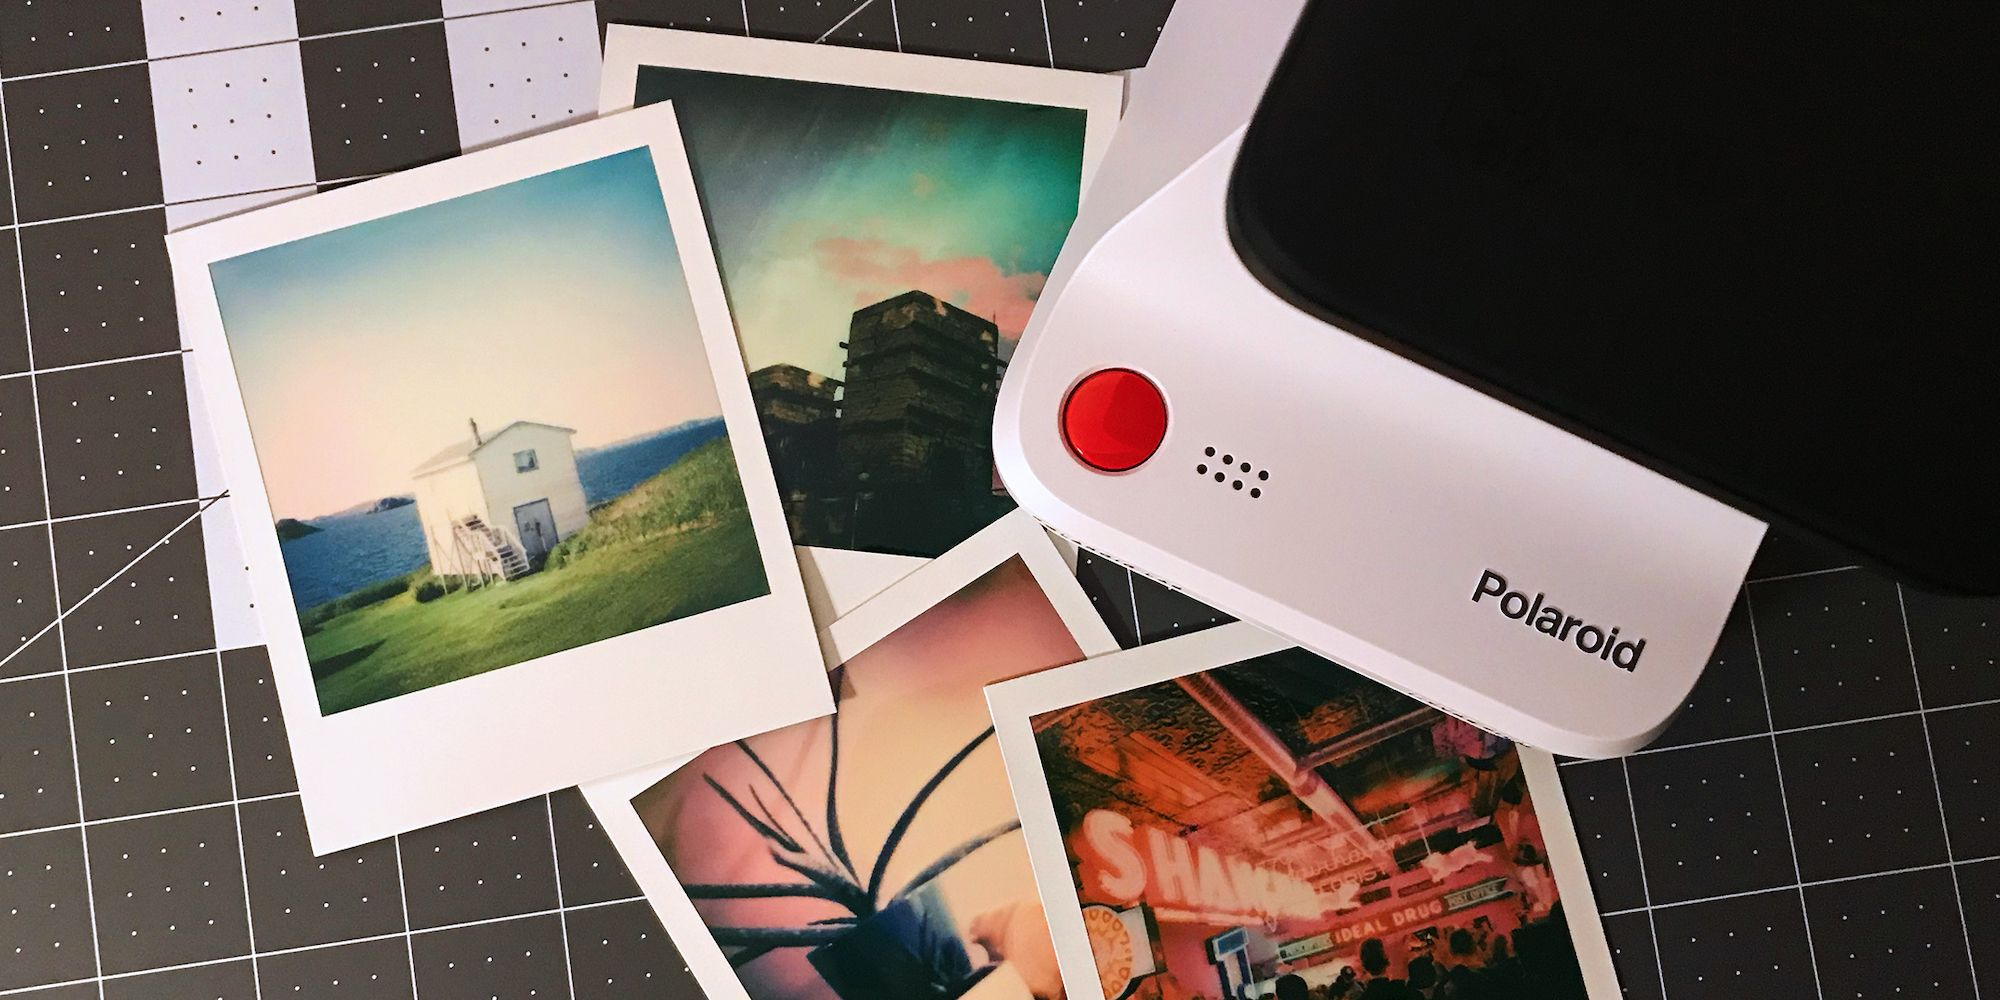 Review: The Polaroid Lab